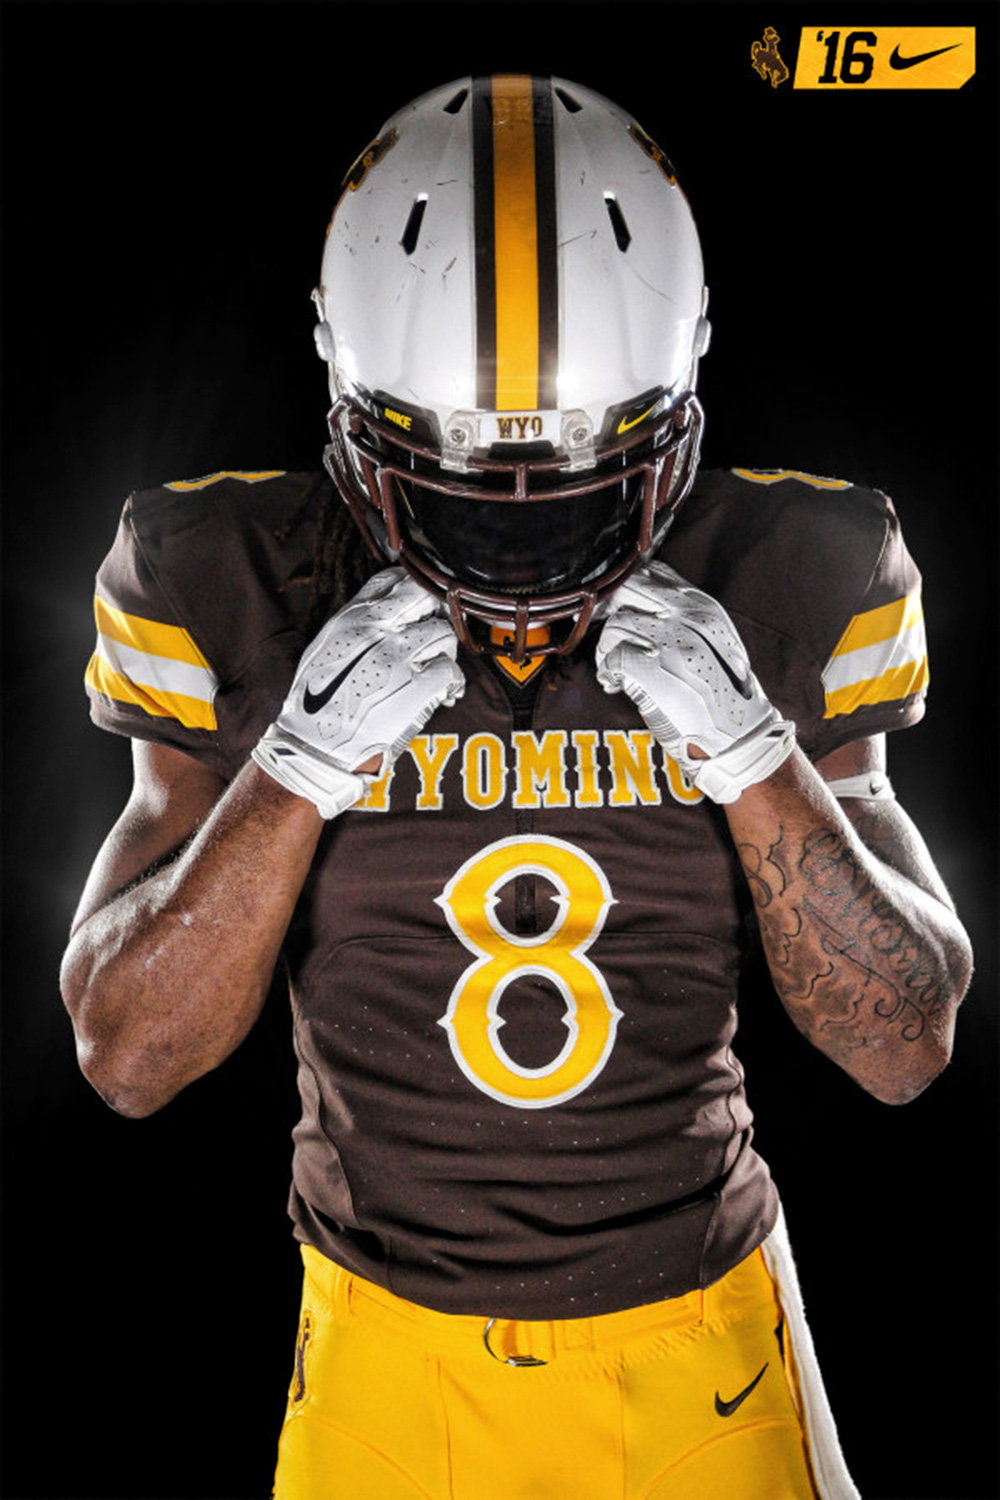 buy online 71737 1501a Wyoming unveils Nike Mach Speed uniforms for 2016 season ...